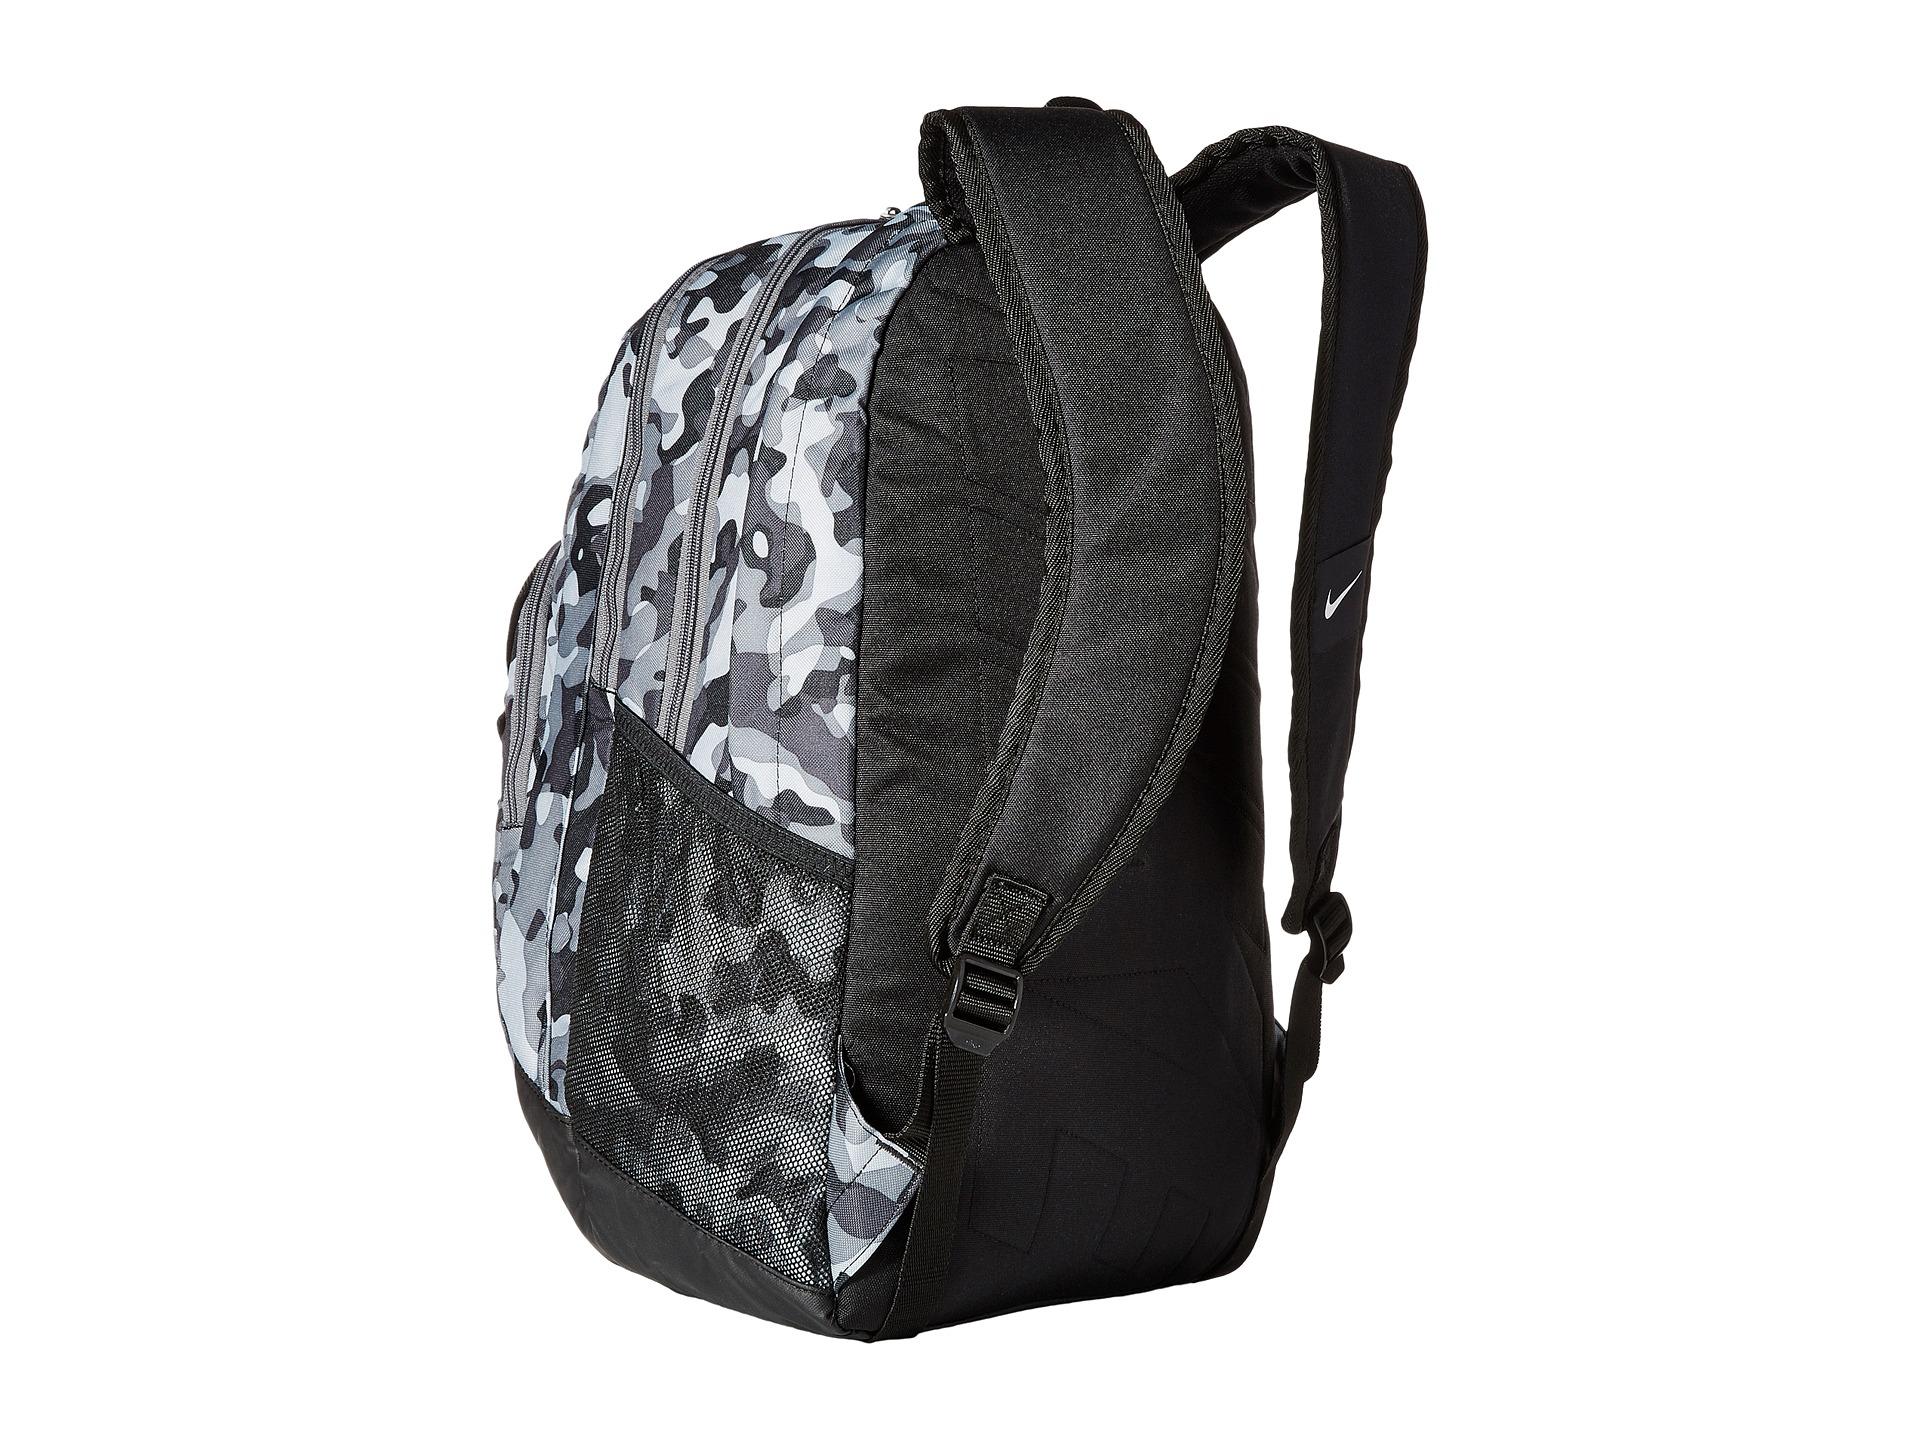 e27704789b28 Lyst - Nike Brasilia 7 Backpack Graphic Xl in Gray